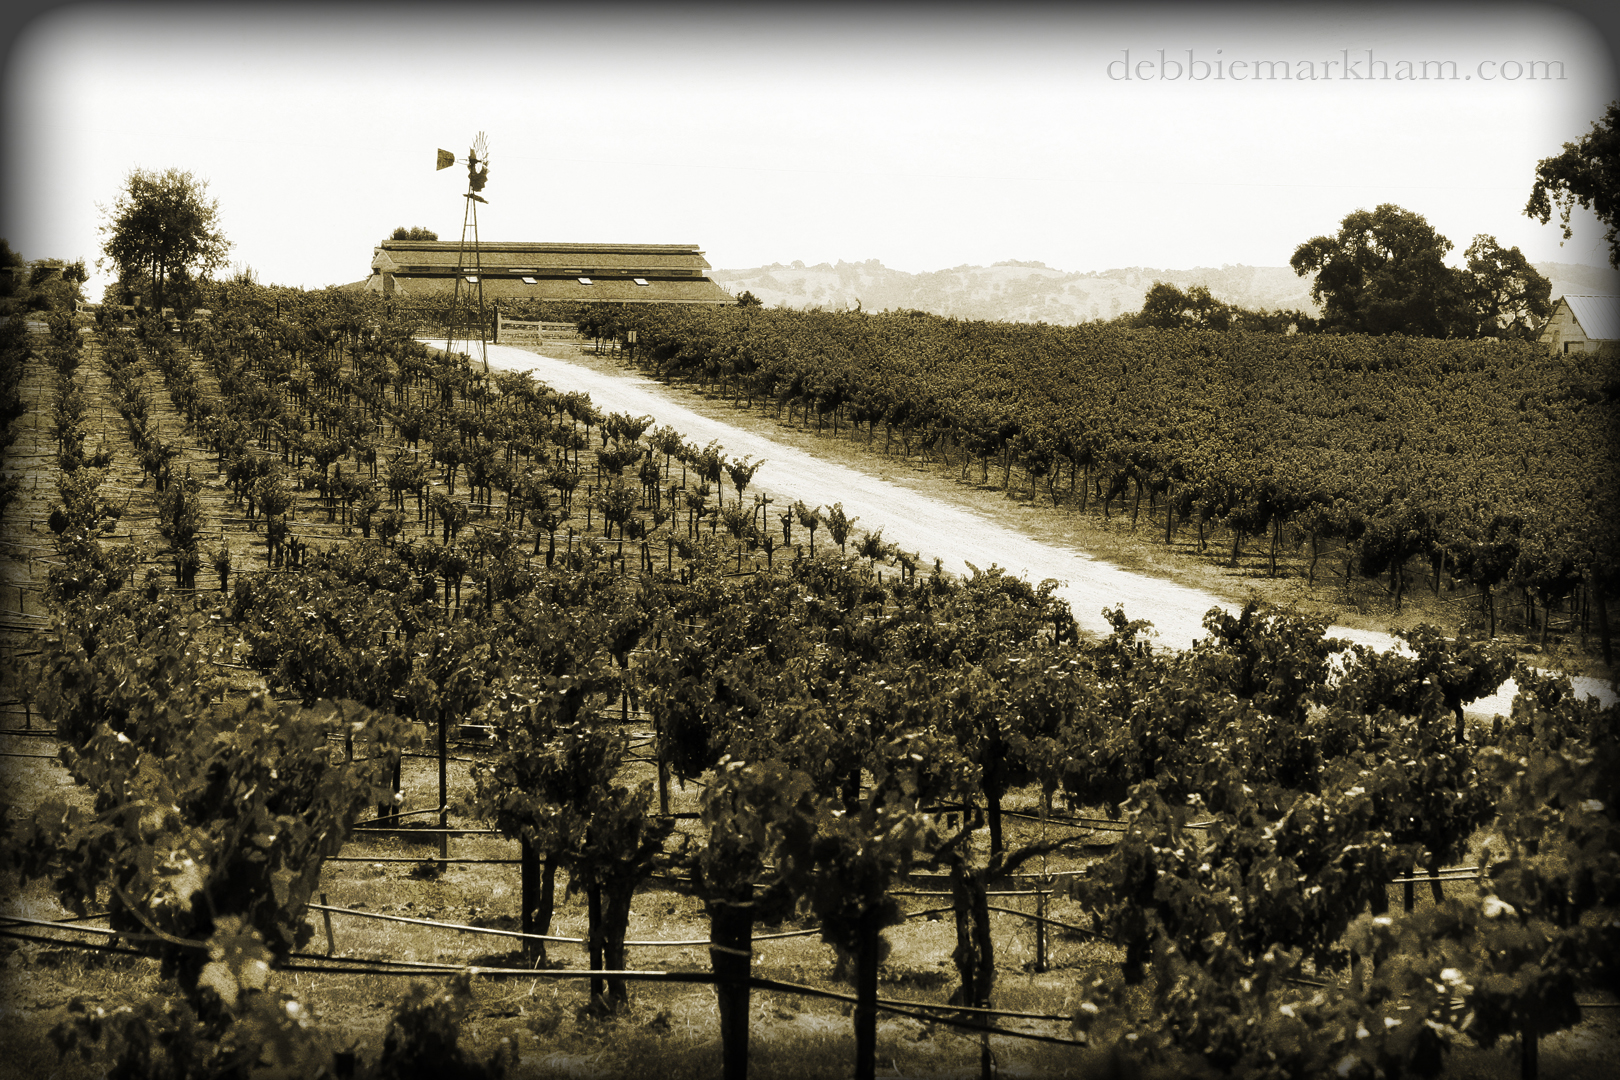 Cambria Photographer Debbie Markham-Landscape of Castoro Winery - Vineyards Outdoor